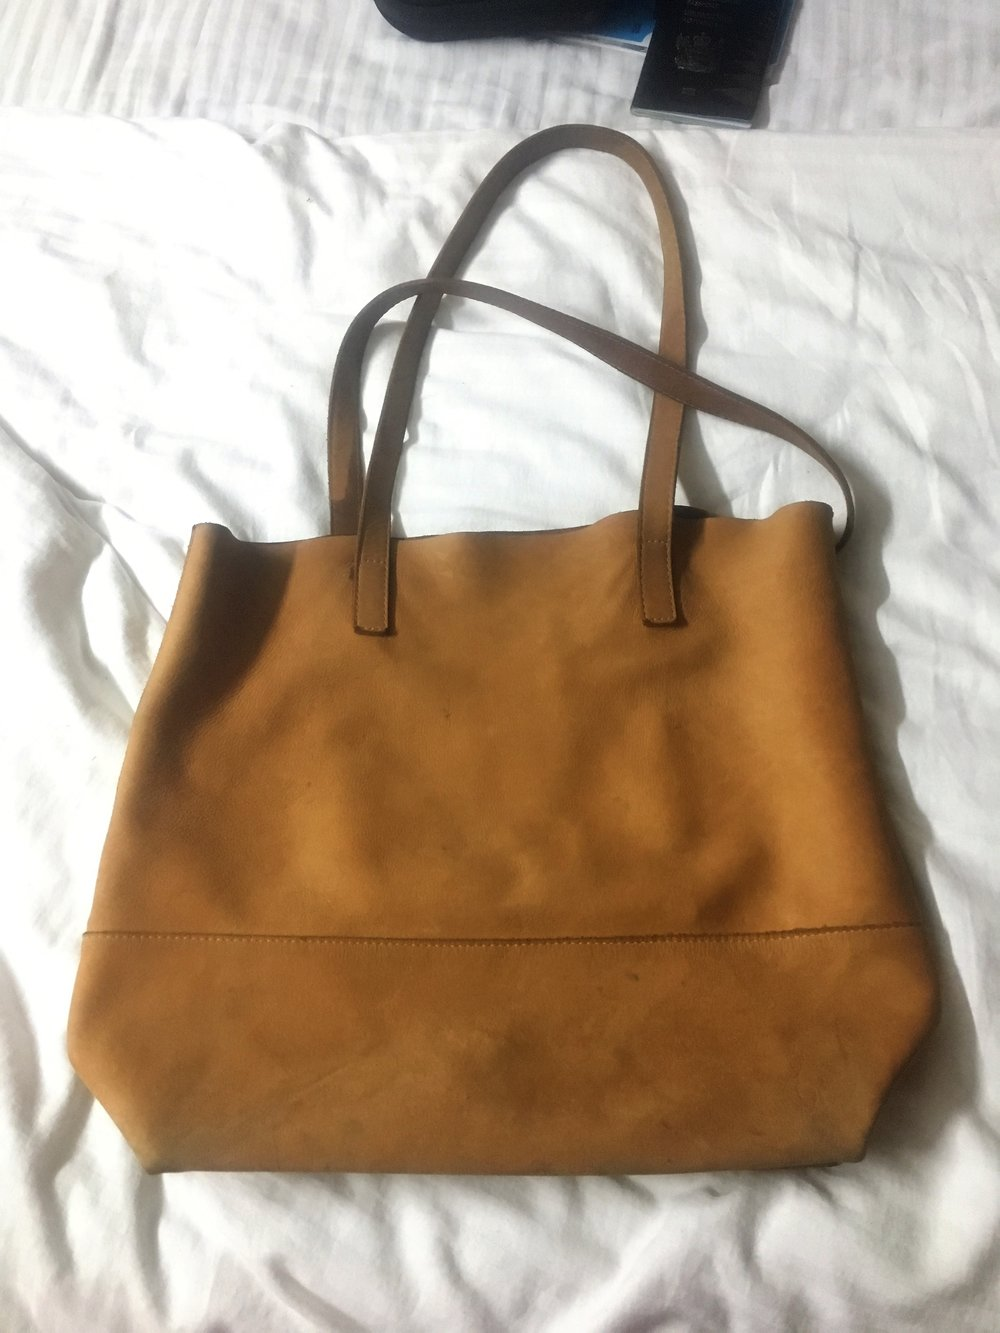 My beloved handbag with nothing in it